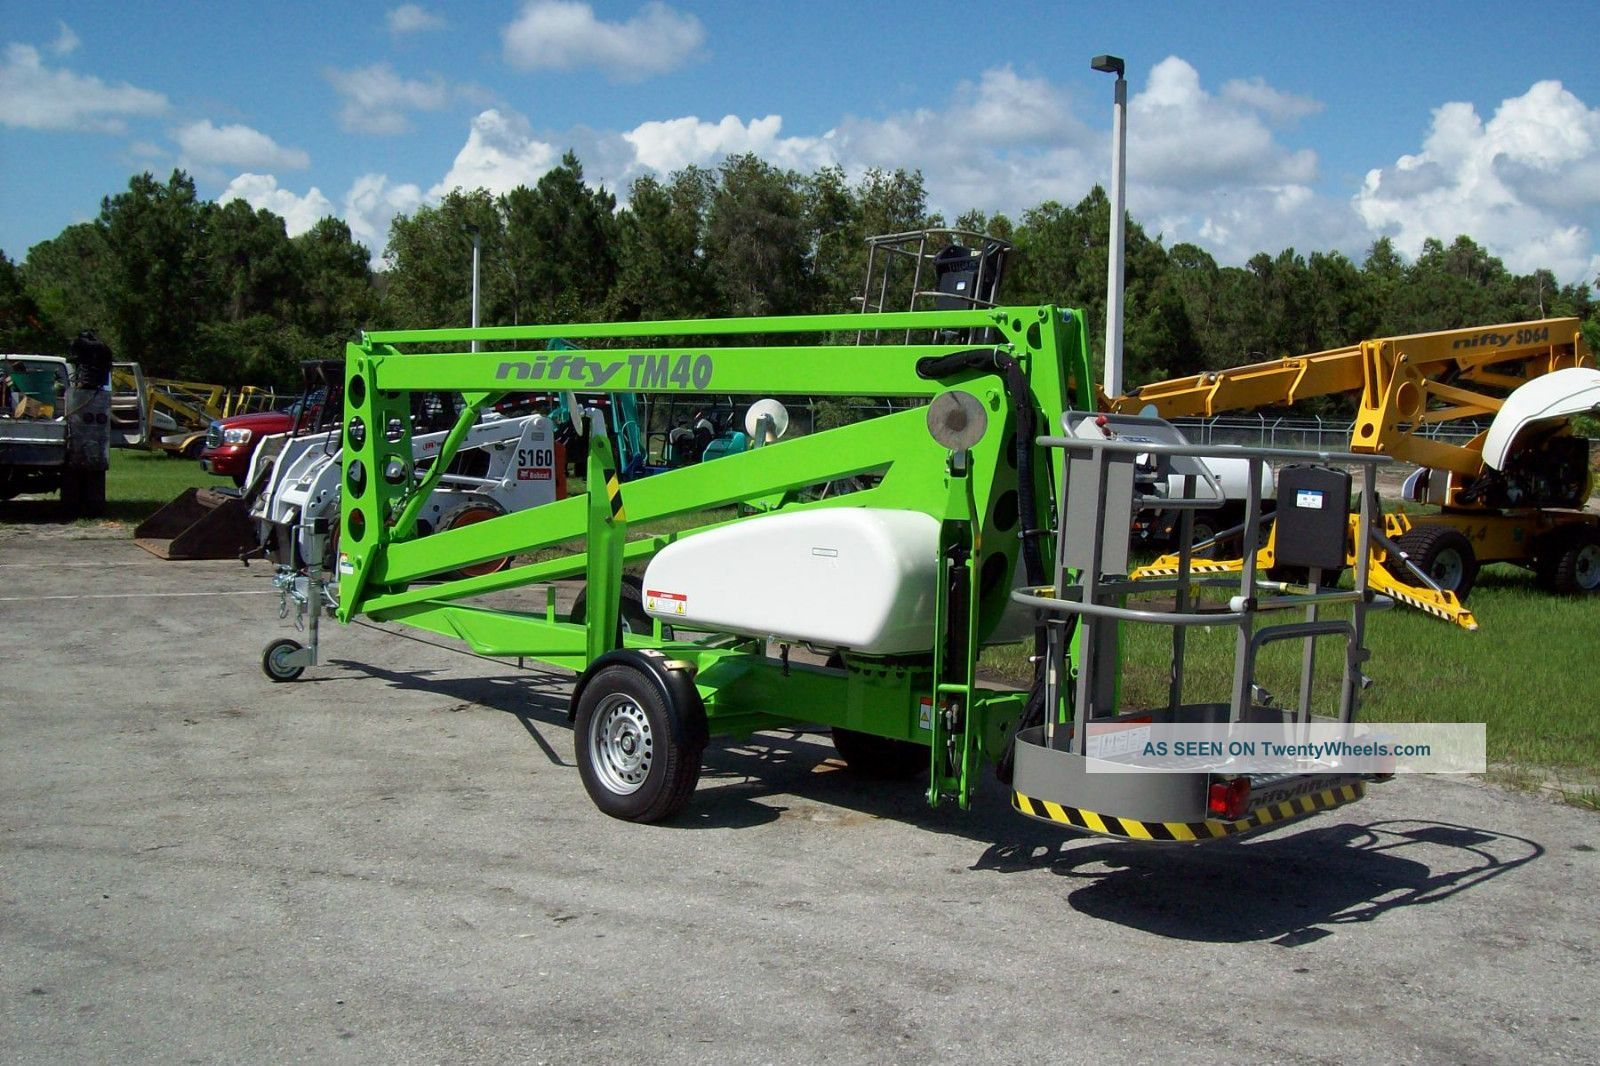 Nifty Tm40 46 ' Towable Boom Lift,  21 ' Of Outreach,  46 ' Work Height,  Bi Energy,  New Lifts photo